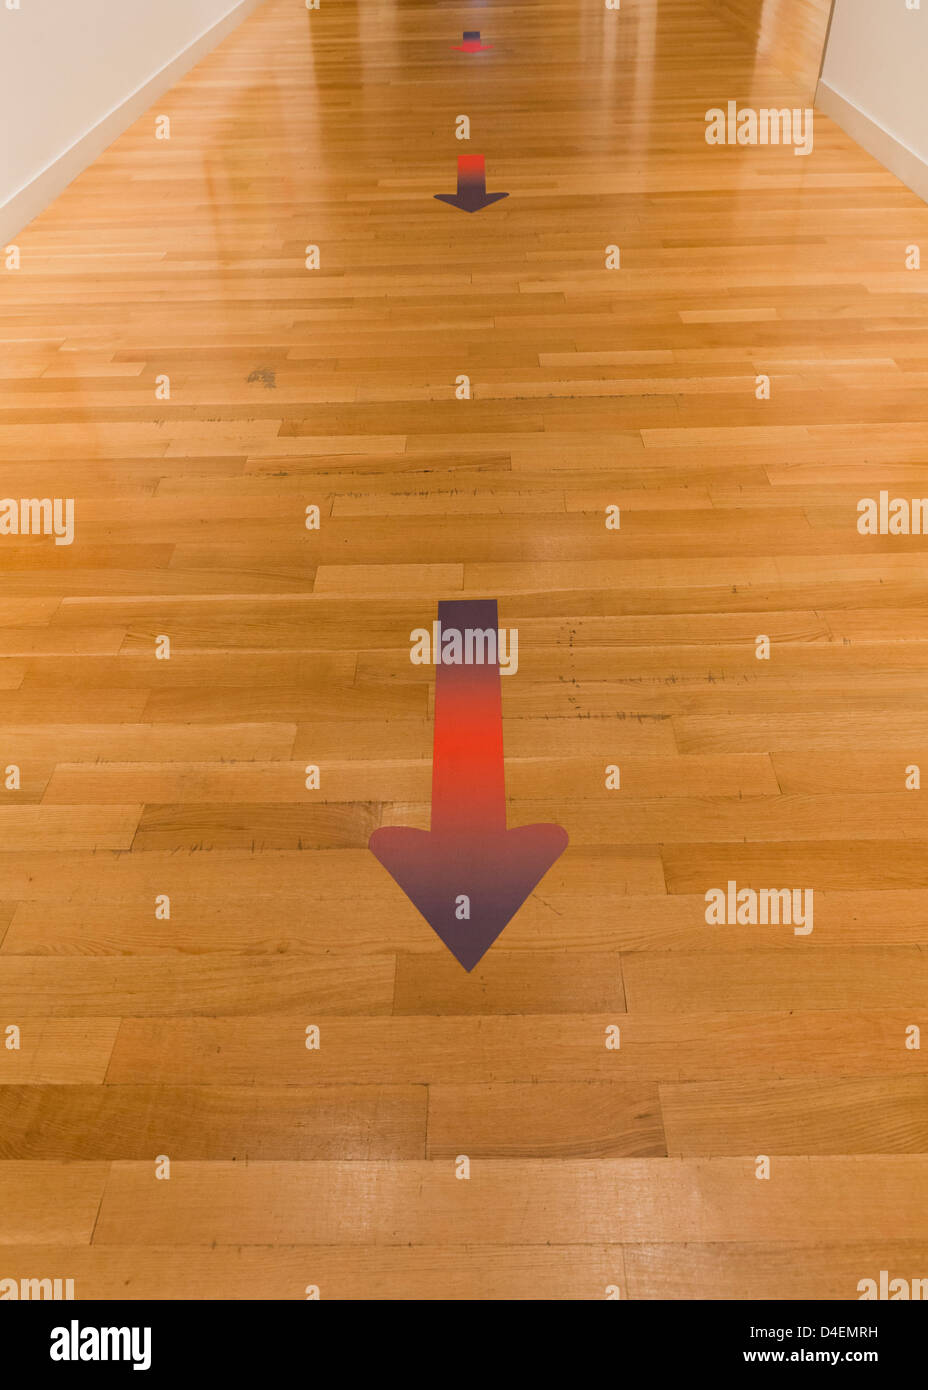 Arrows on floor - Stock Image